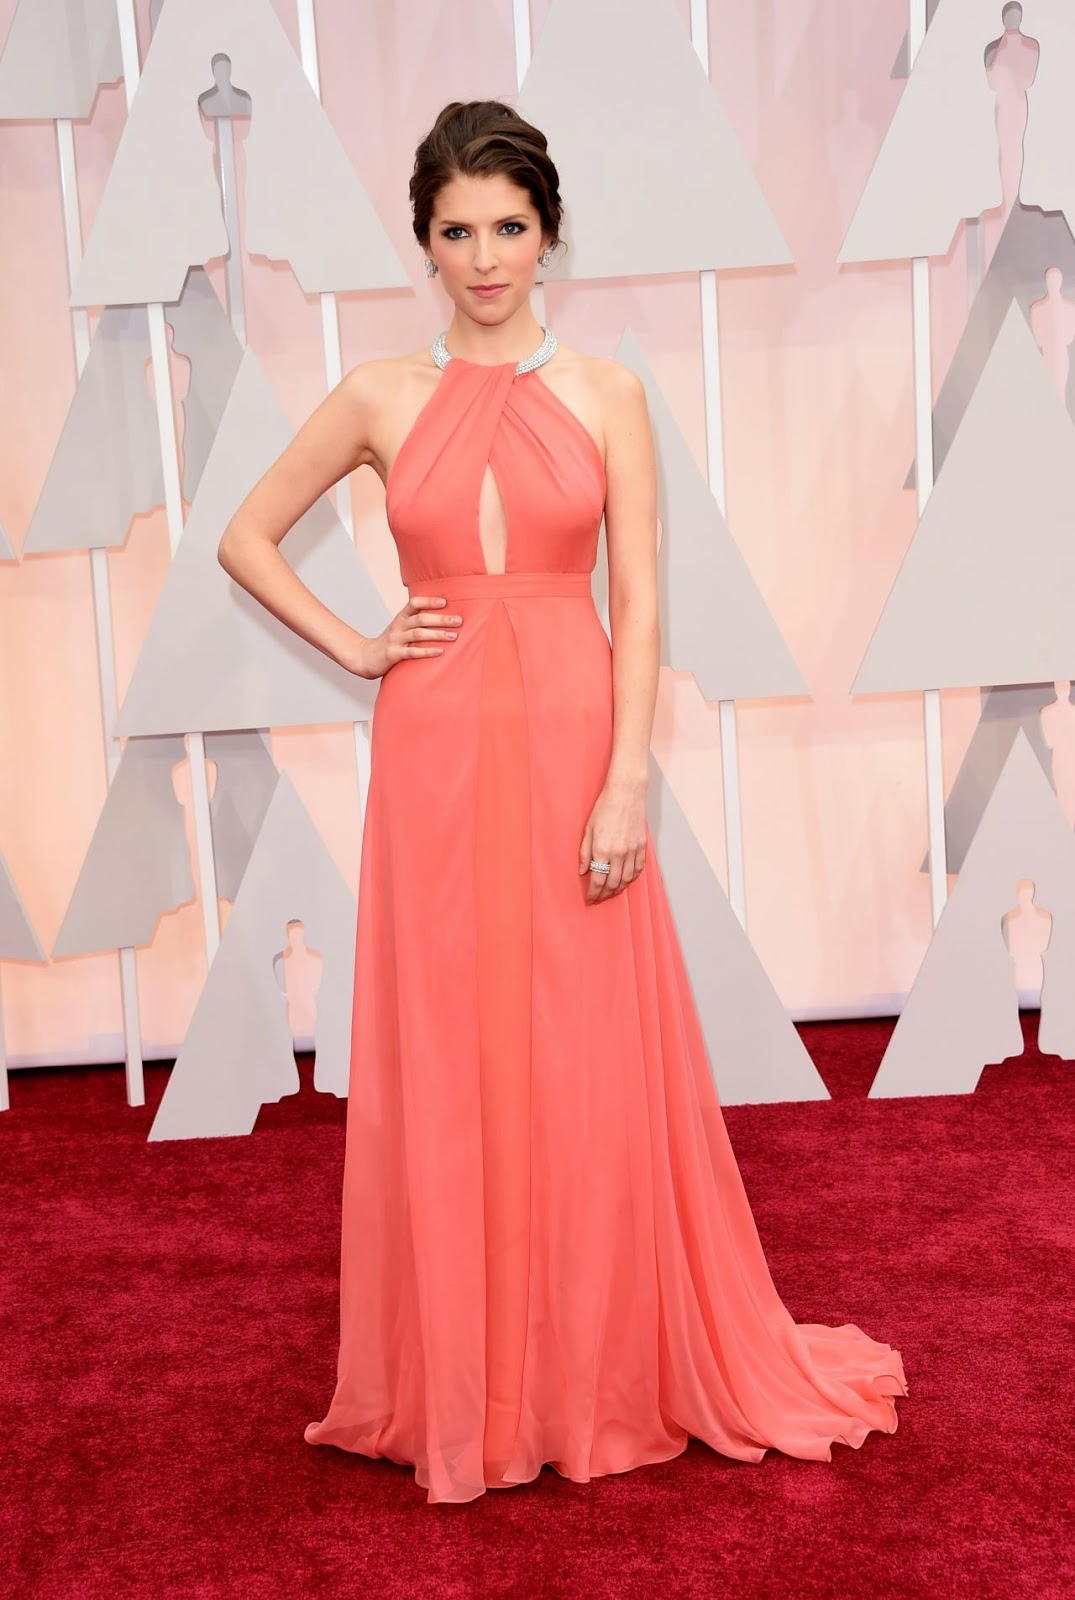 Anna Kendrick wears a beautiful peach gown at the 2015 Oscars in Hollywood